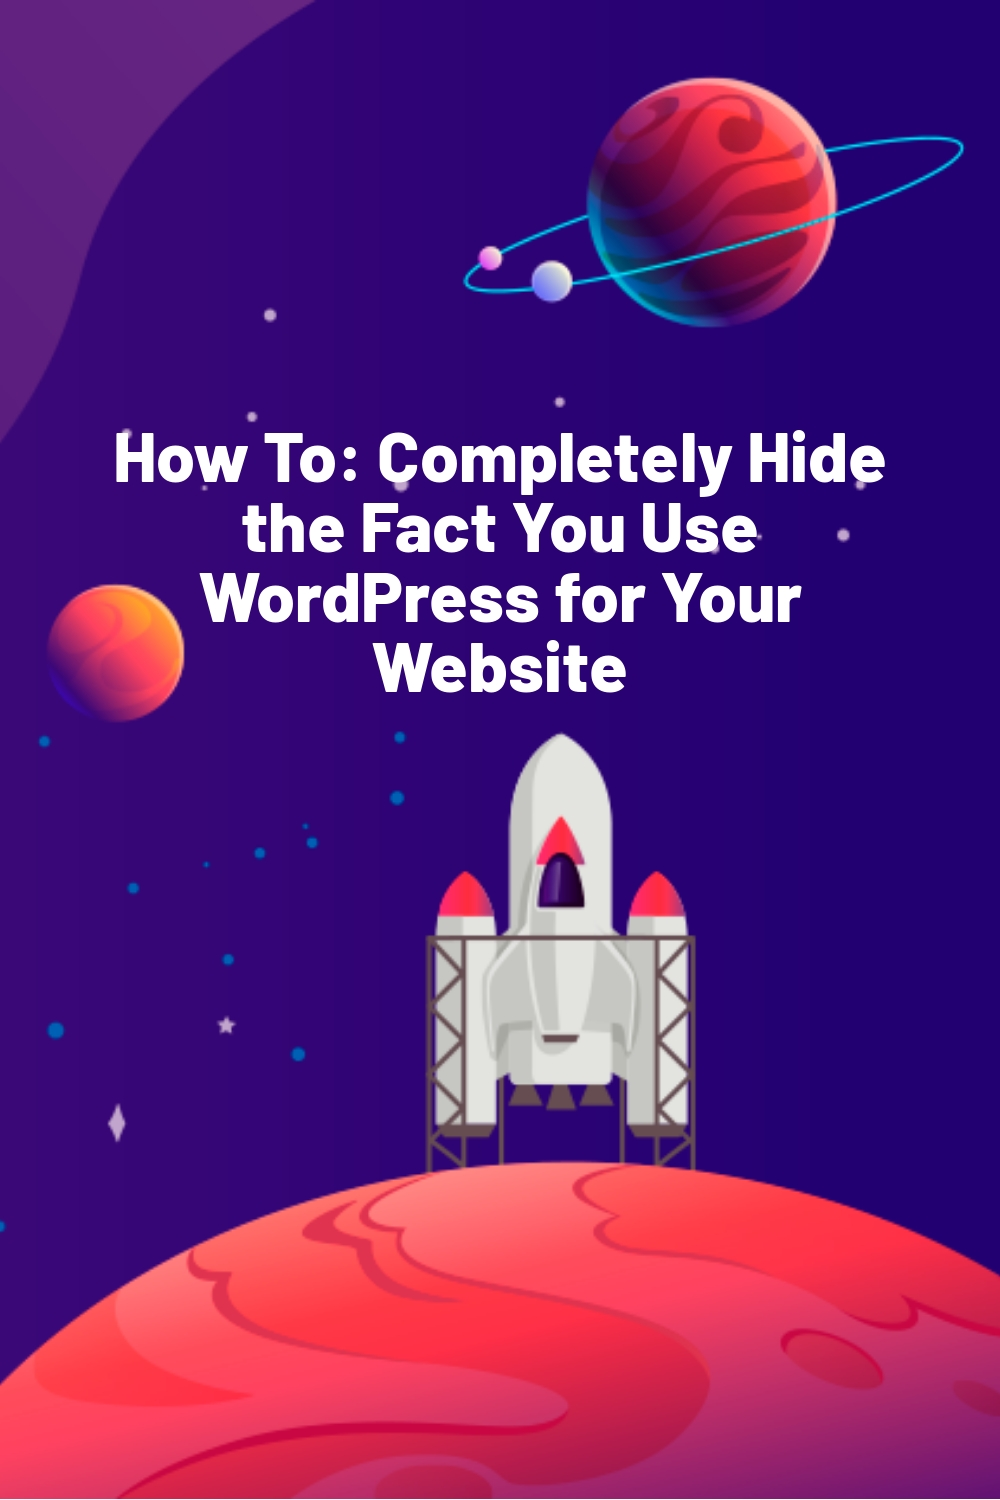 How To: Completely Hide the Fact You Use WordPress for Your Website